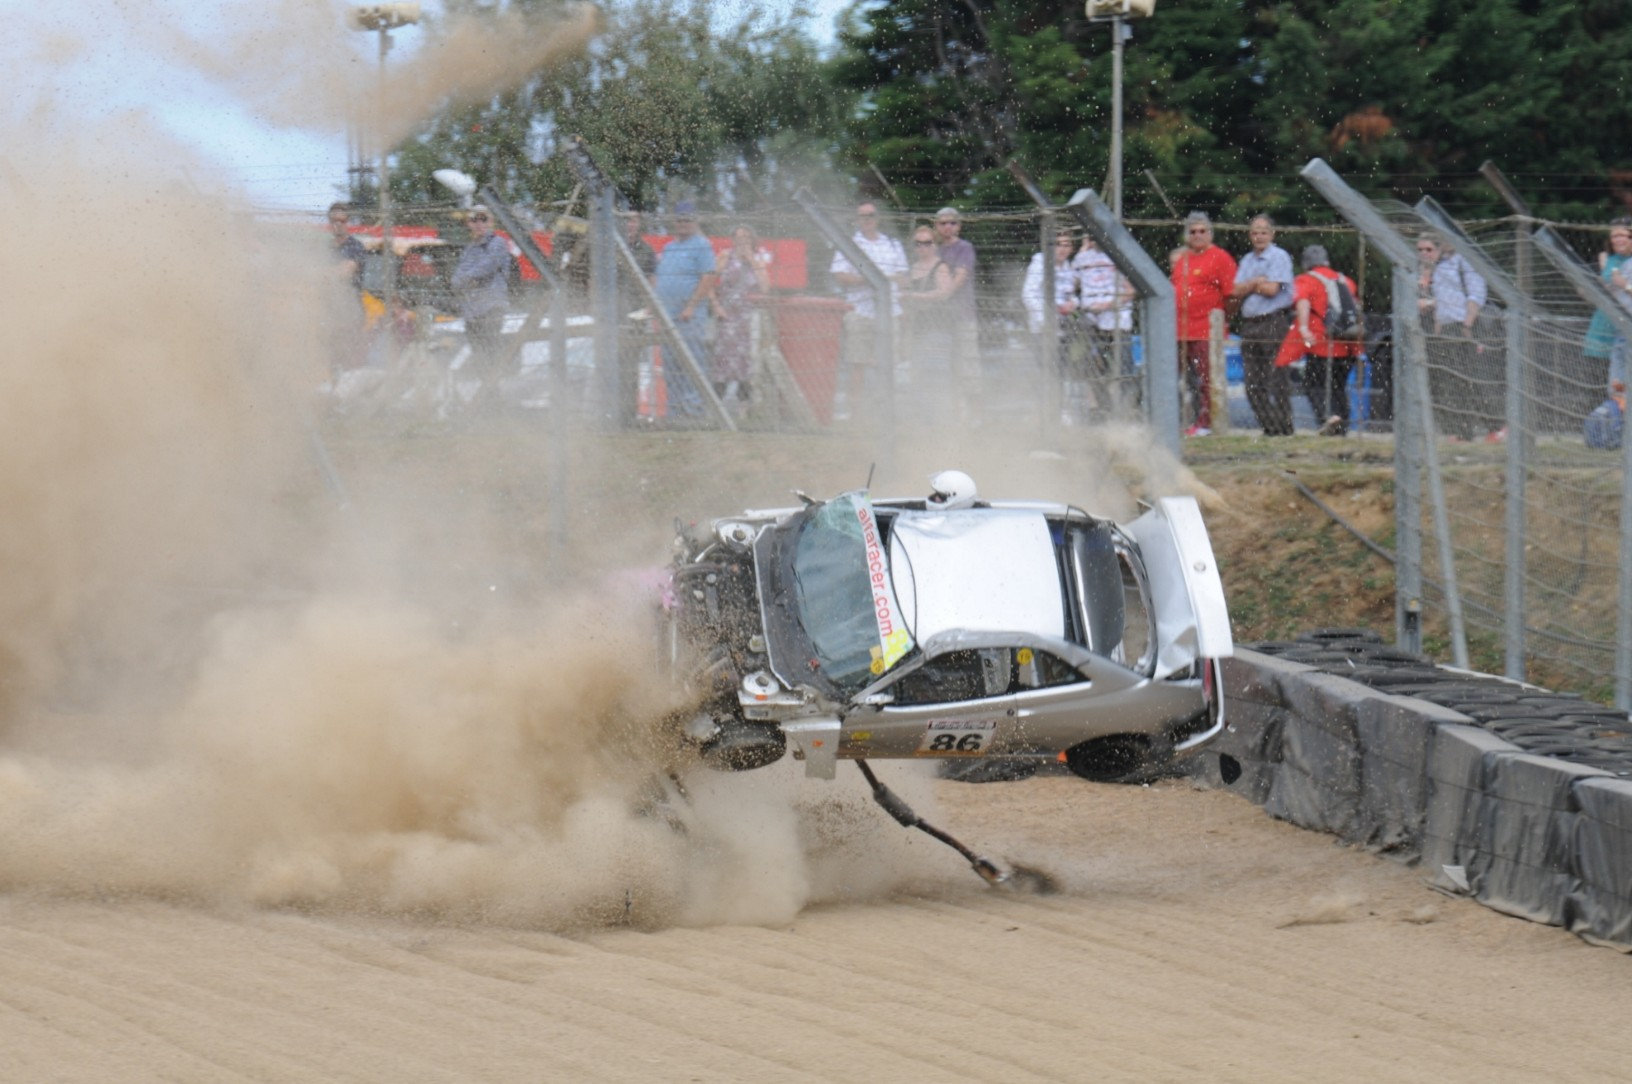 Incredible Moment Racing Driver Survives Crash With Head Out Of Window SWNS CRASH ROLL 12